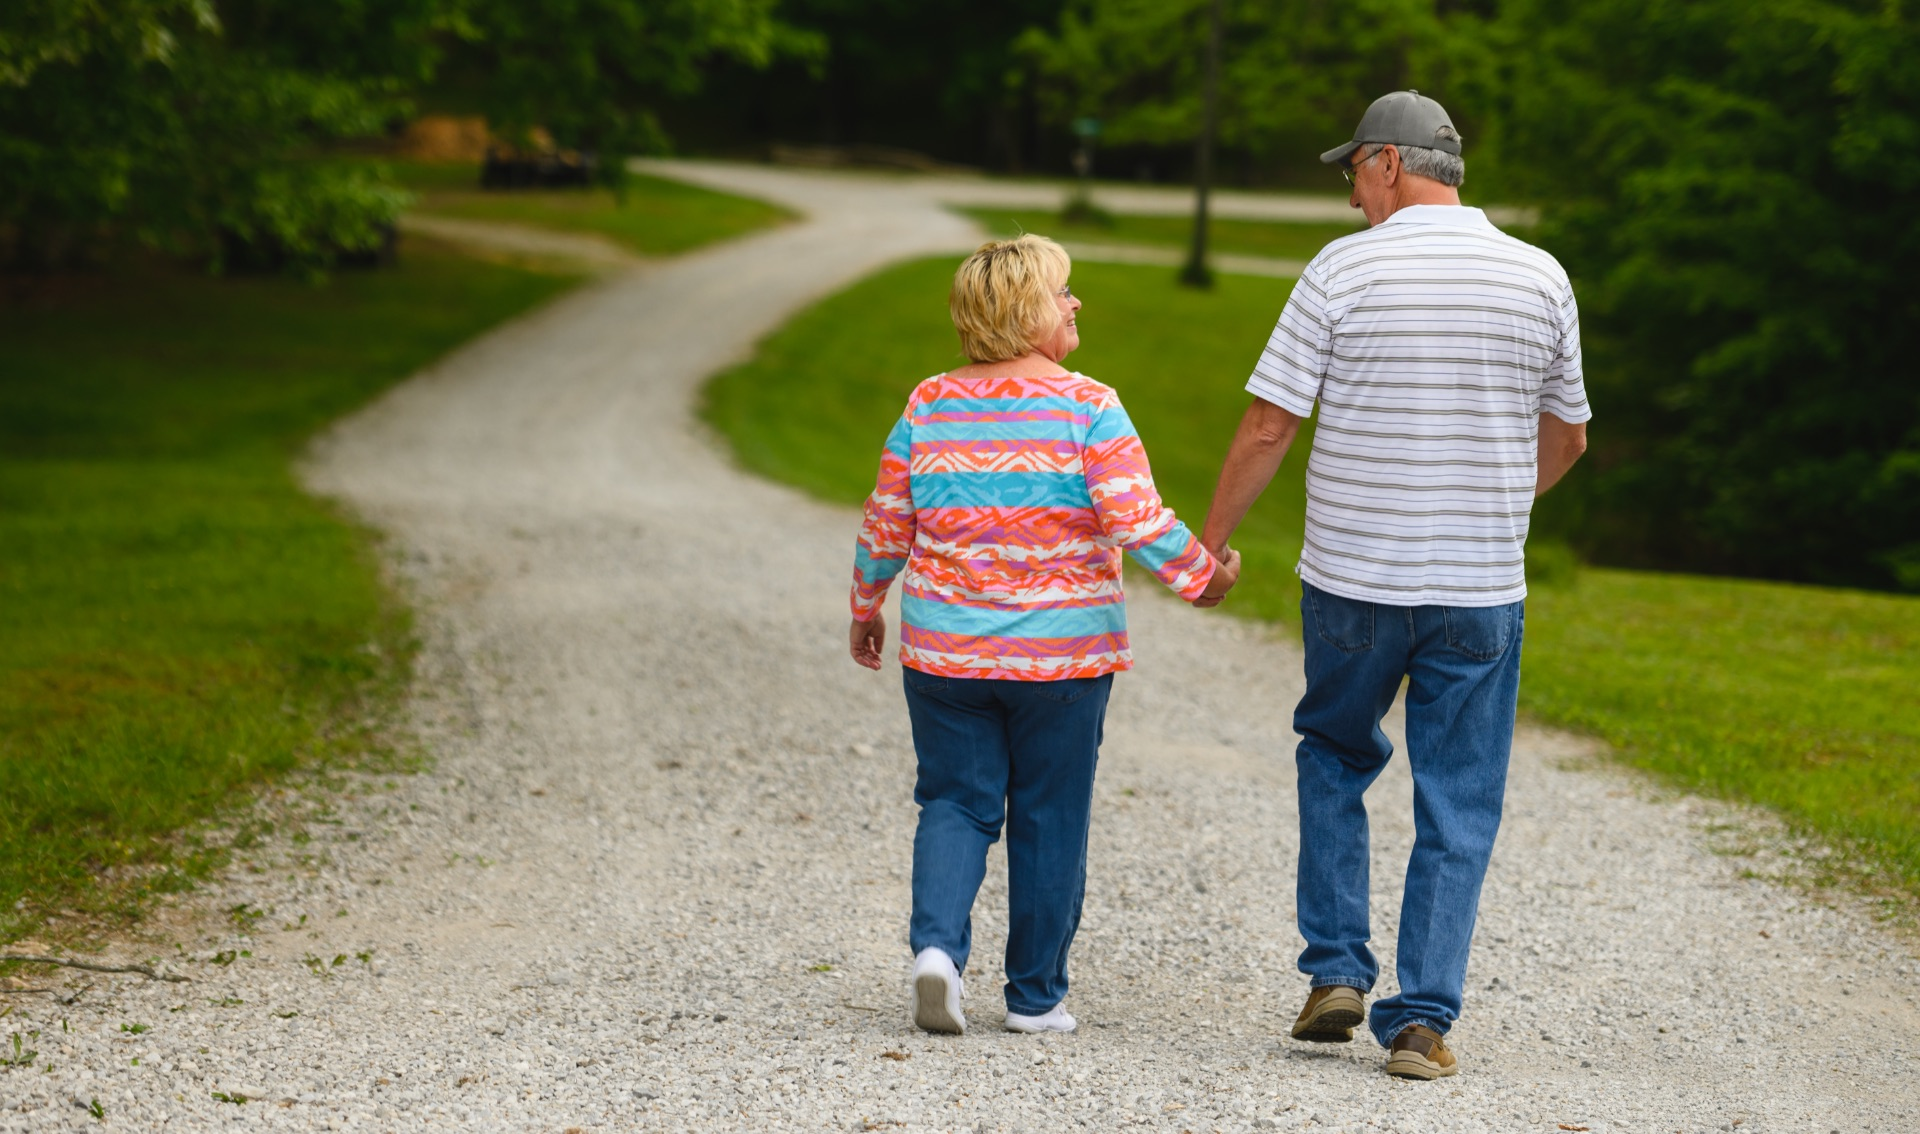 Danny and his wife, an older white woman with blonde hair, walk down a path at a park.